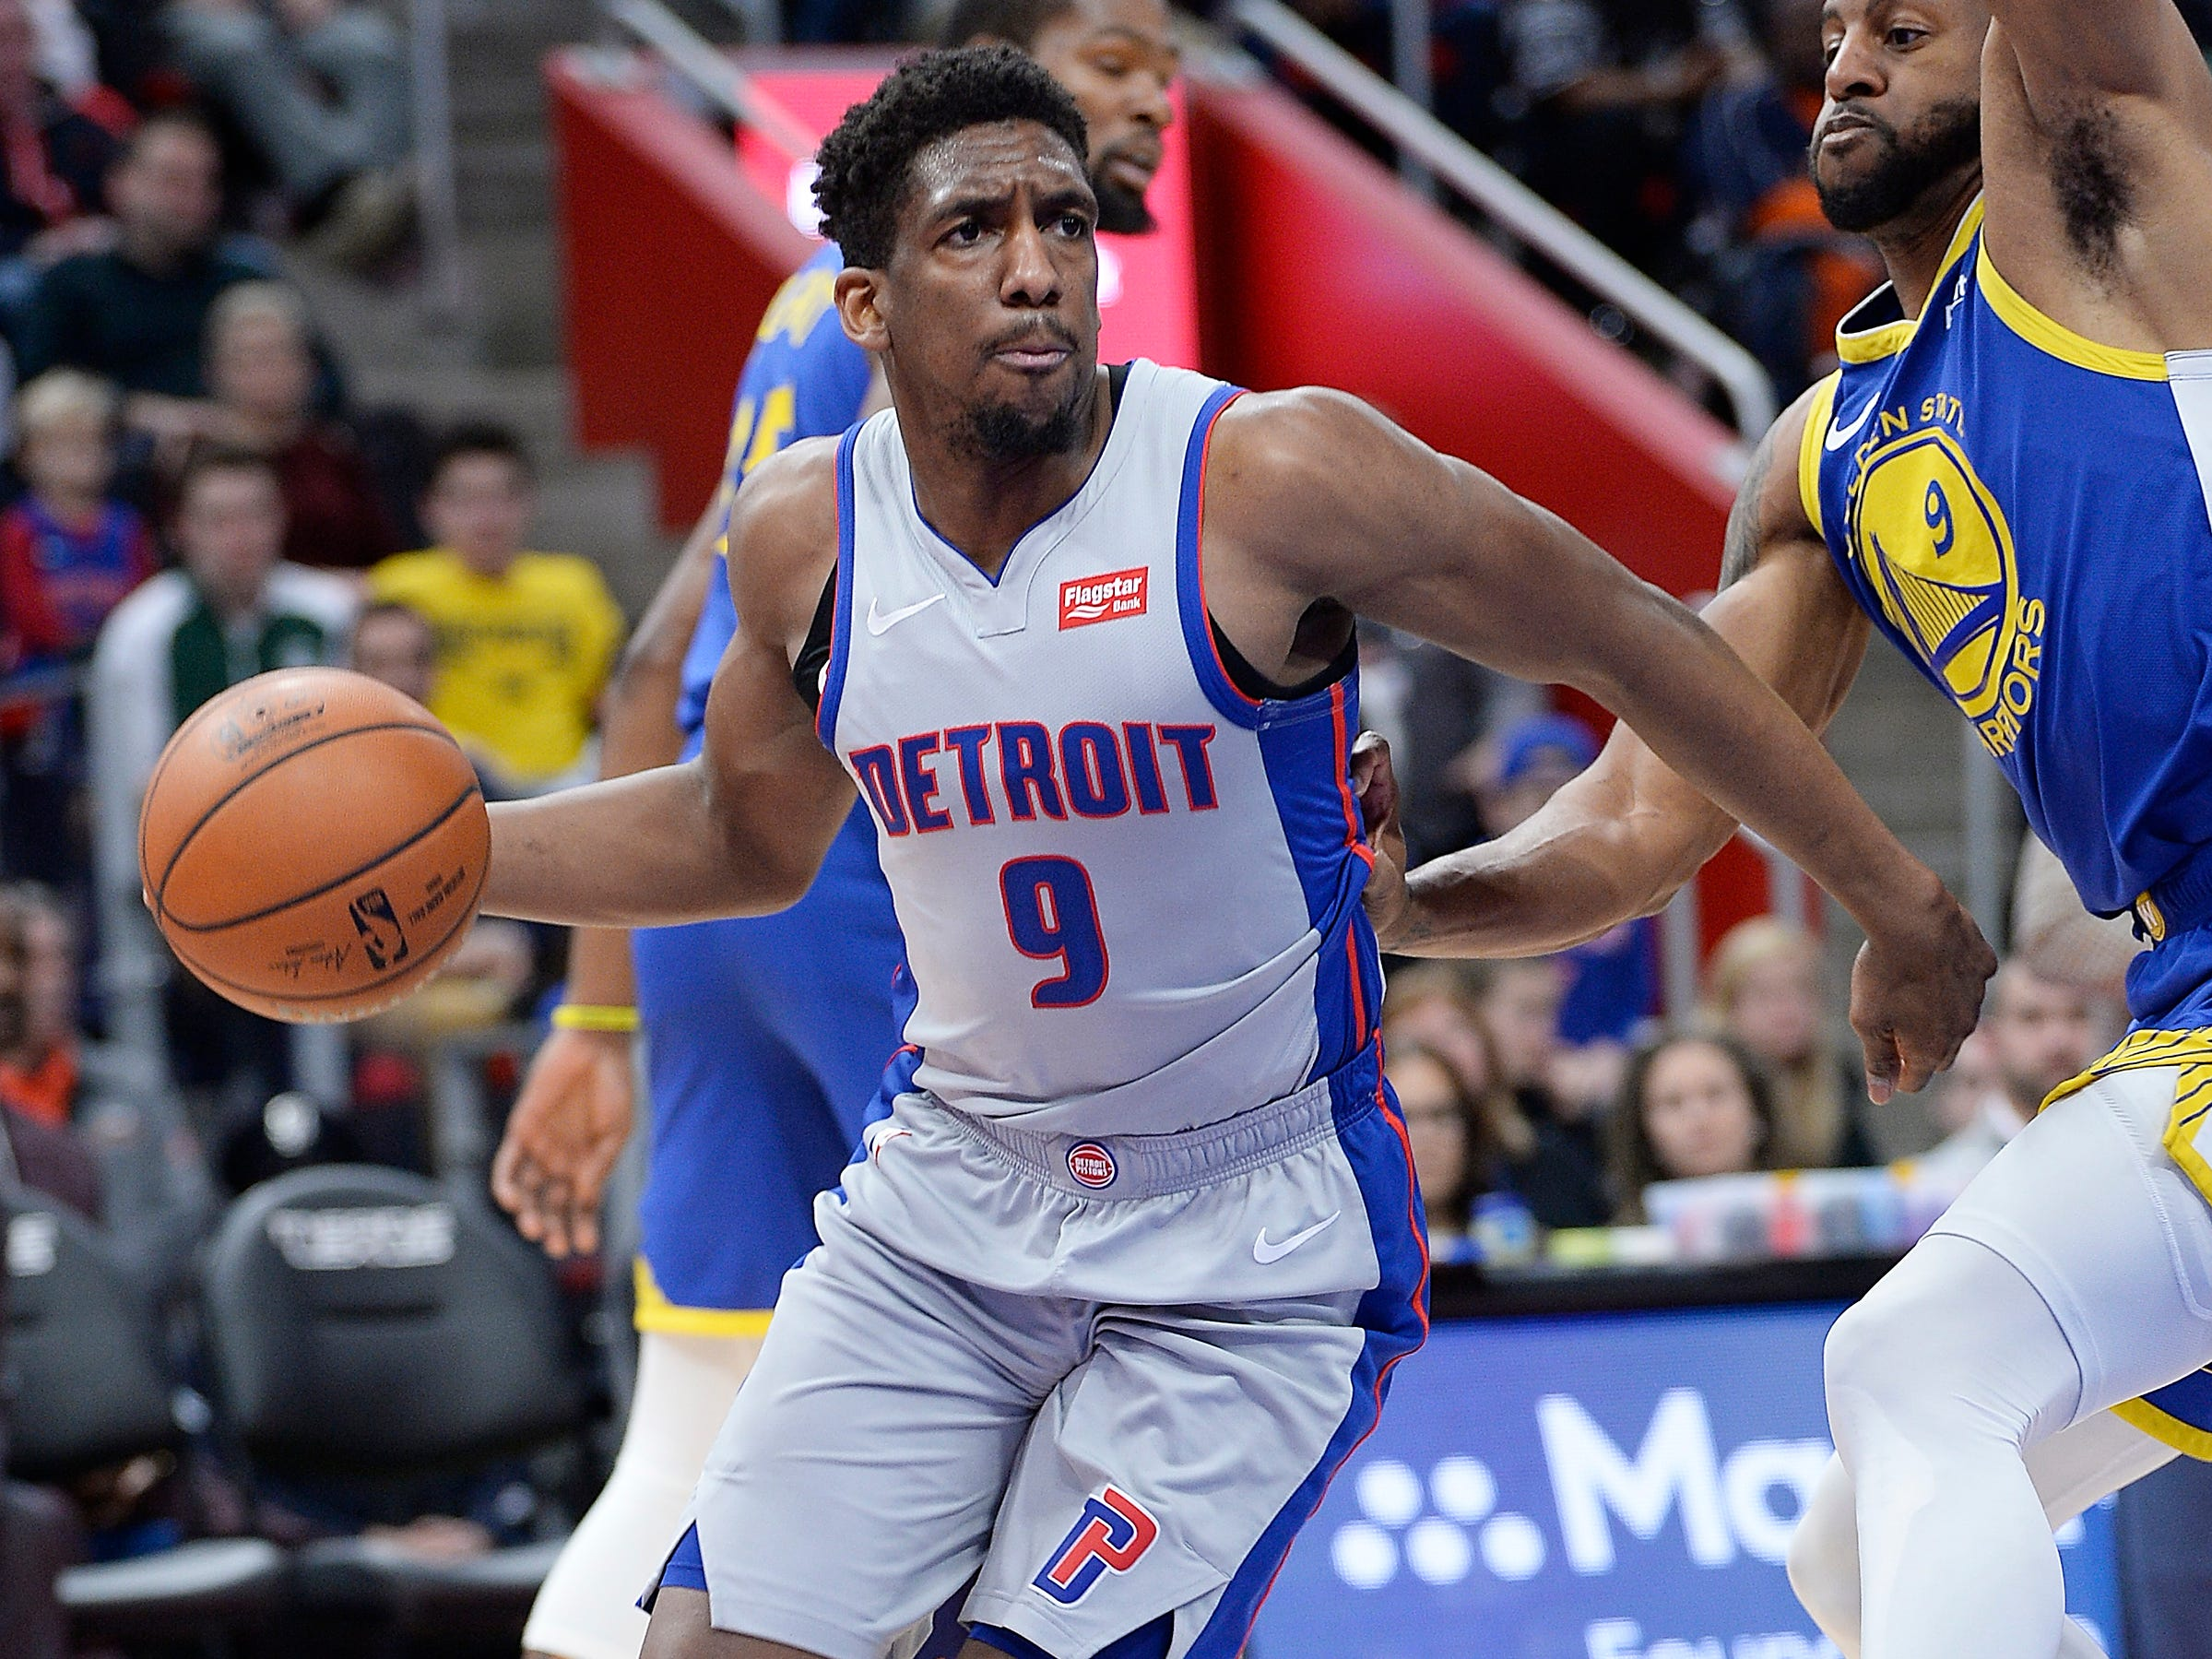 Langston Galloway -- Stats: 8.5 pts., 2.4 rebs., 35% 3FG in 40 games. Age: 27. He was mired on the bench for most of last season, but found a new role in the rotation under Casey. It's been an up-and-down first half of the season, as his shot has come and gone, but he's played hard in almost every game. Grade: C+